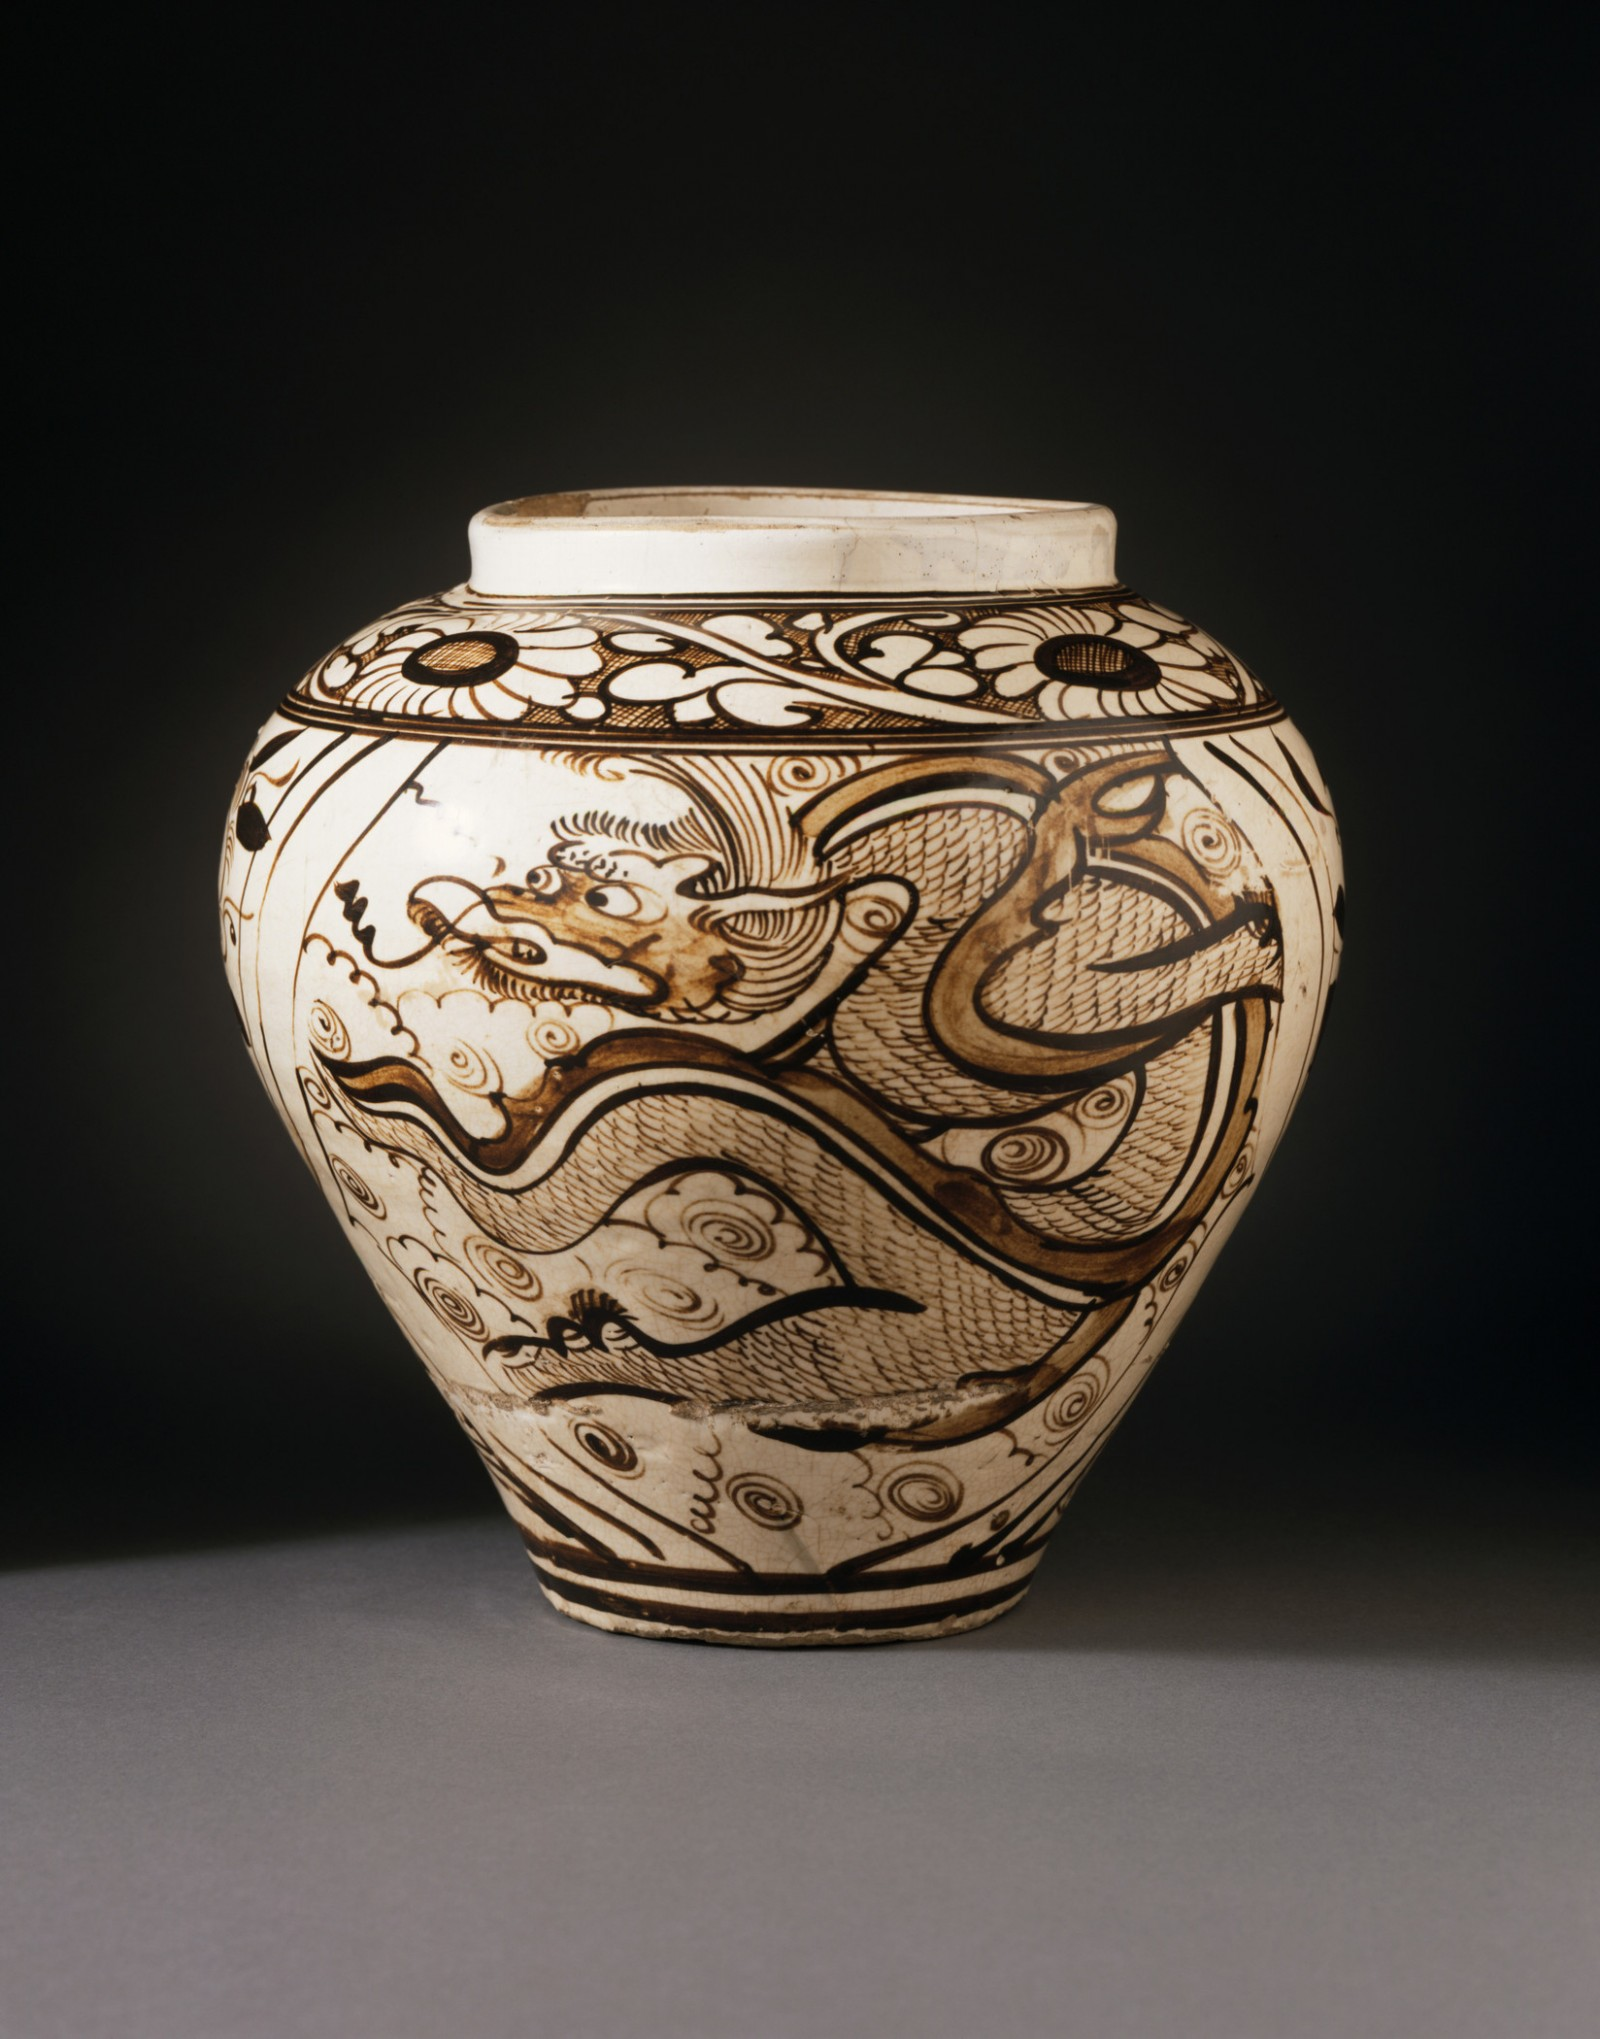 mage: Jar (Ping) with Dragon and Clouds, Yuan dynasty, 1279–1368, Los Angeles County Museum of Art, purchased with funds provided by Jack G. Kuhrts, photo © Museum Associates/LACMA.